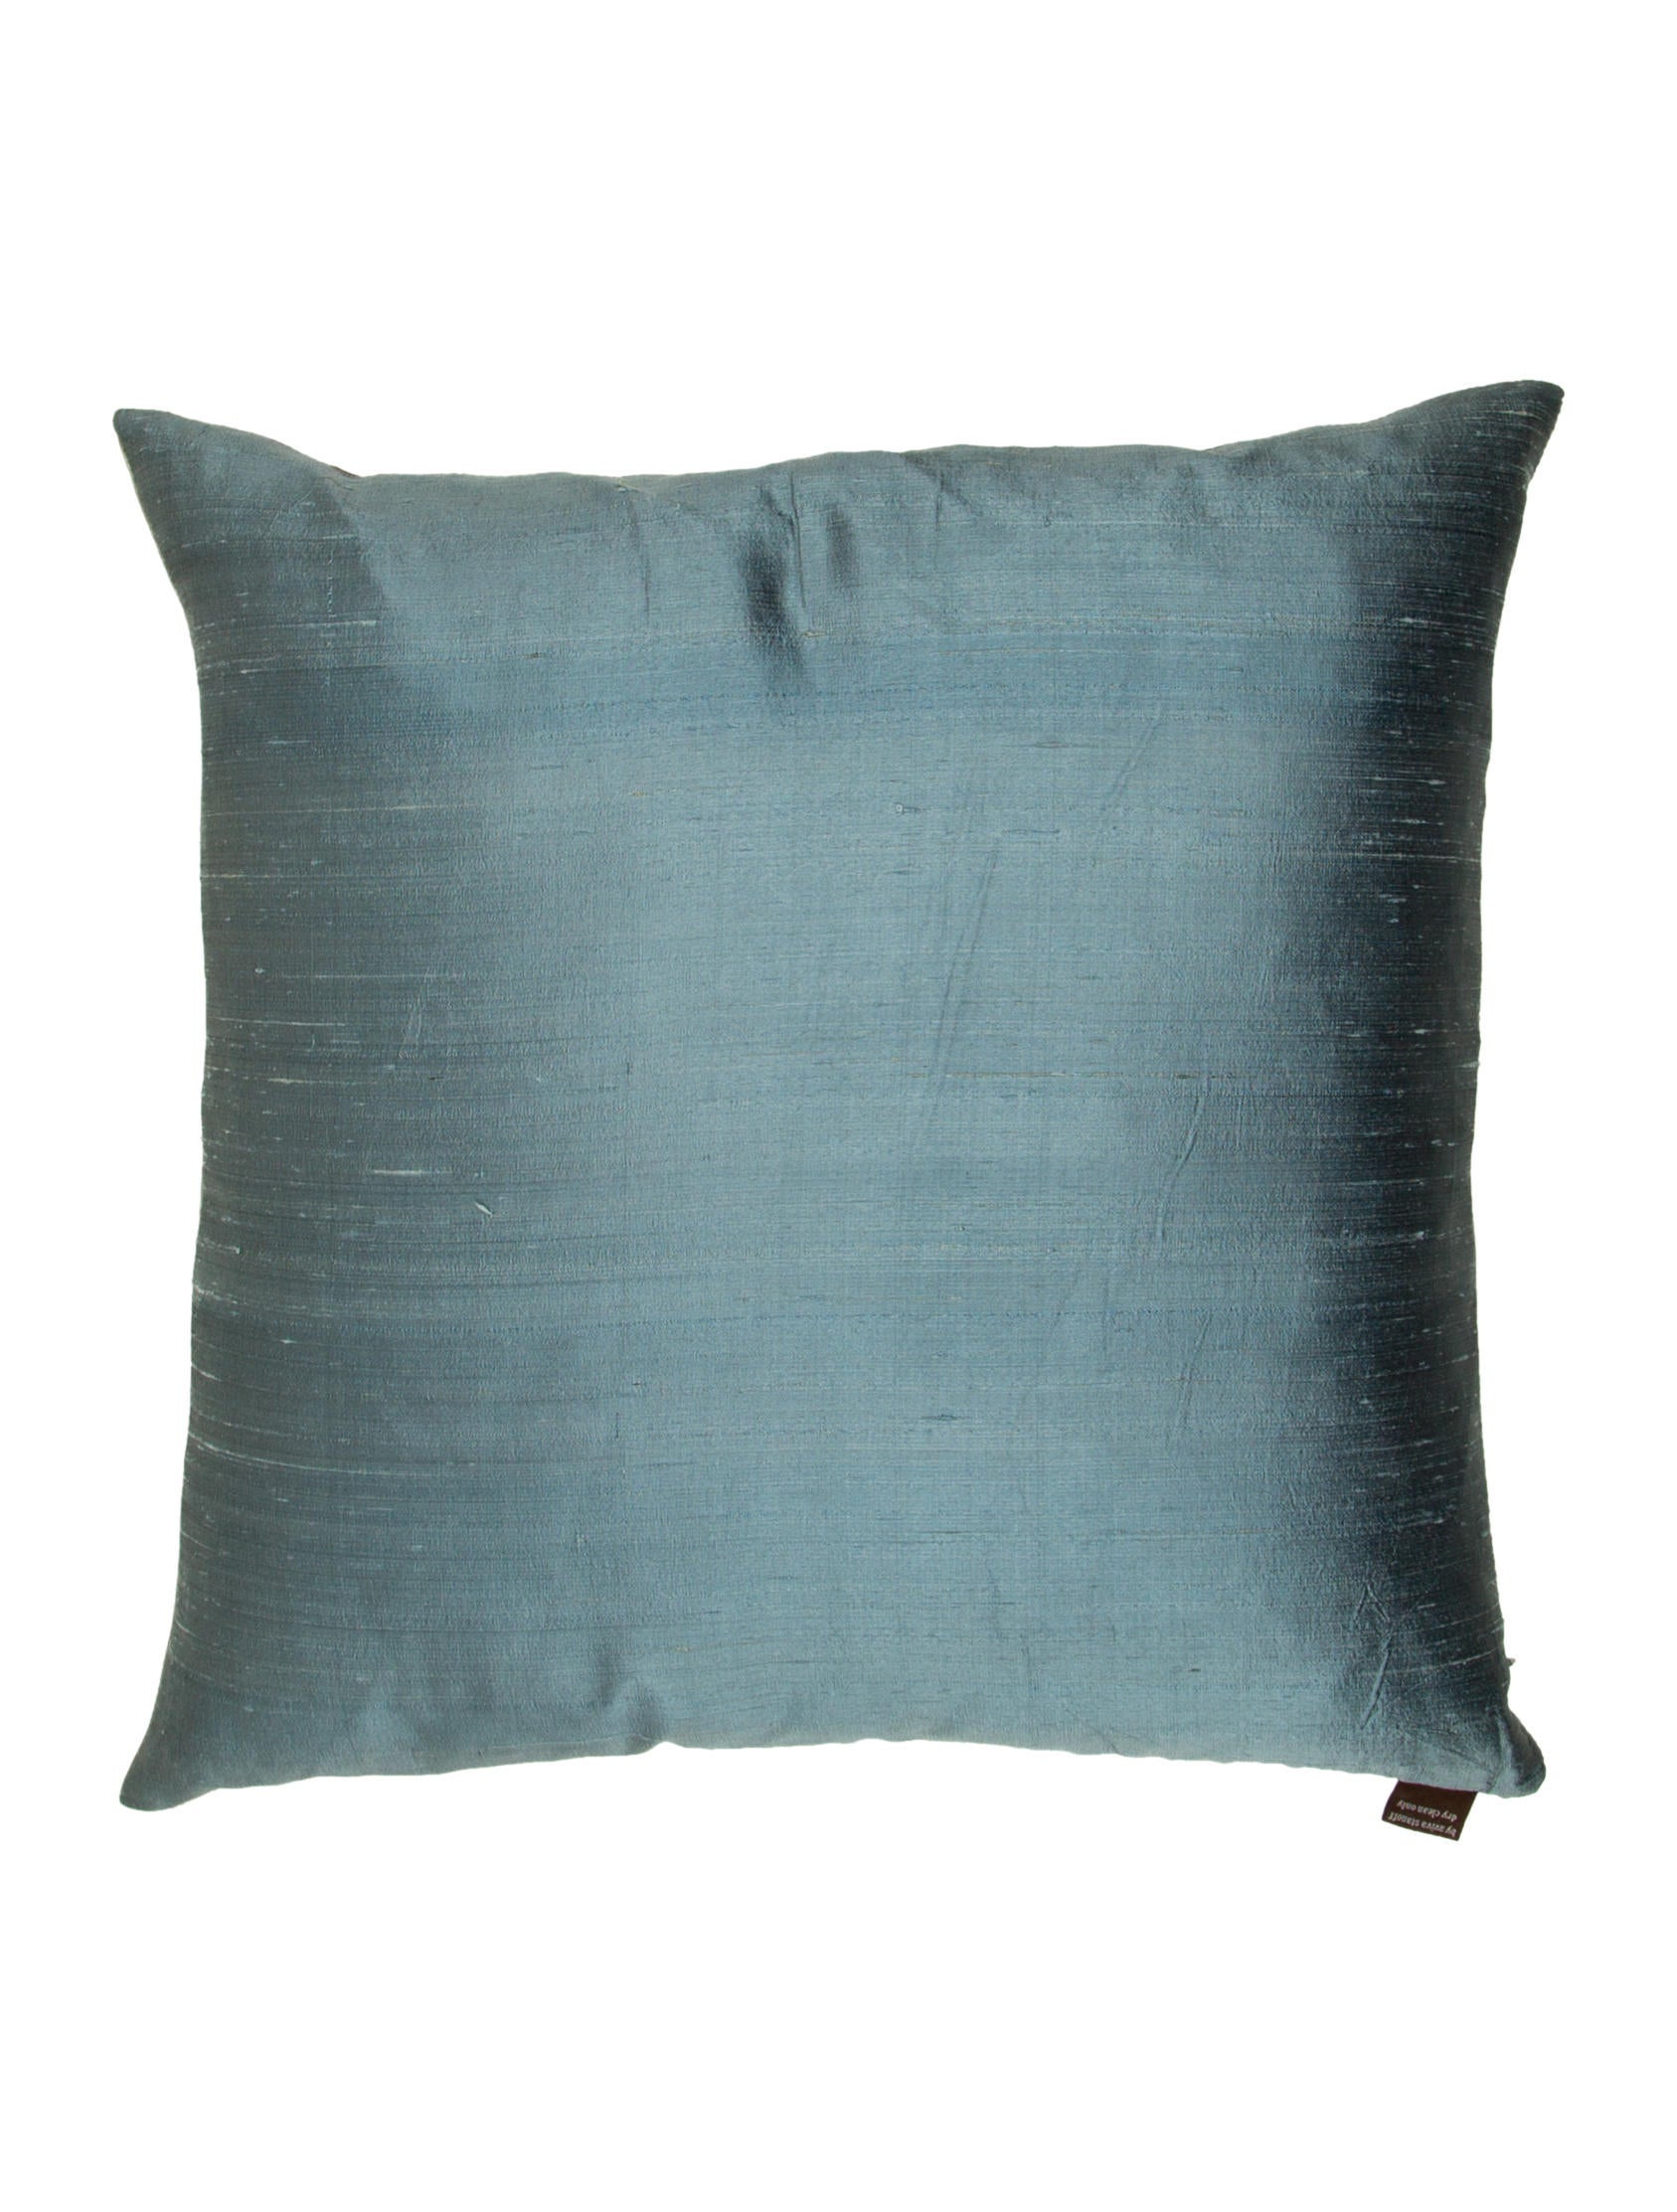 Aviva Stanoff Throw Pillow - Pillows And Throws - AVI20007 The RealReal